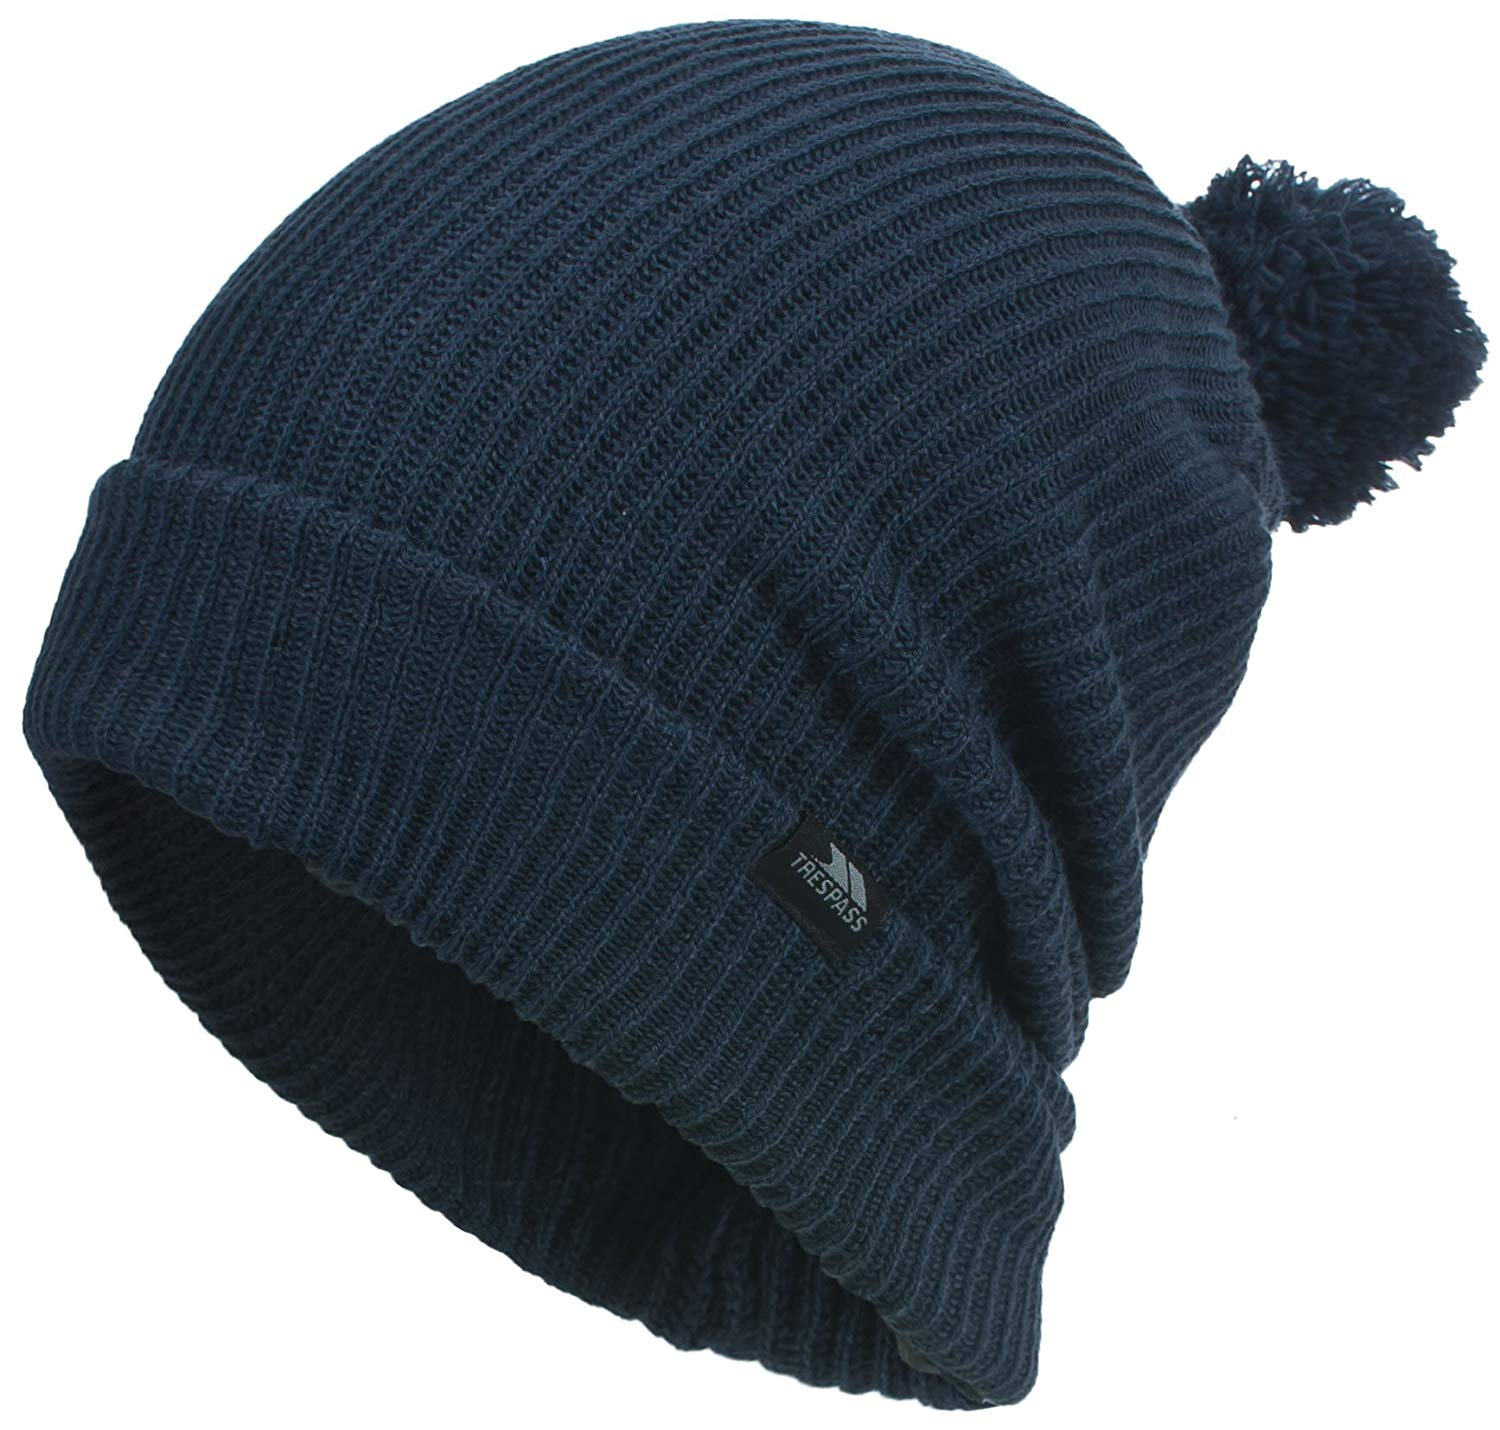 e6c7b273ea911d Cheap Mens Slouch Hat, find Mens Slouch Hat deals on line at Alibaba.com